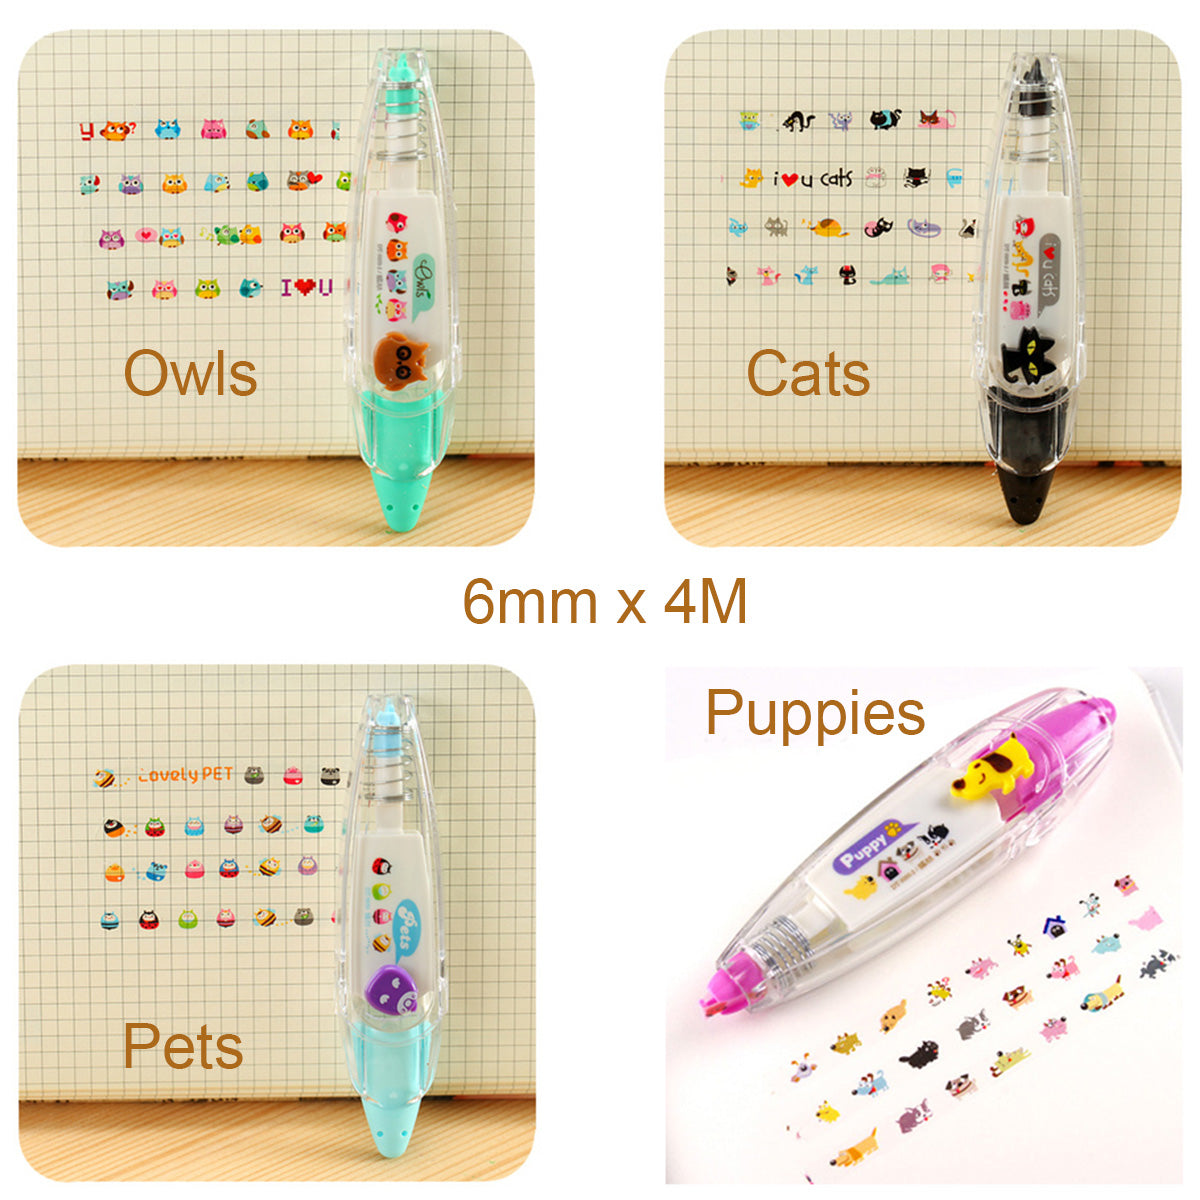 Wrapables Novelty Sticker Machine Pens, Decorative Stationery Supplies for Home Office School